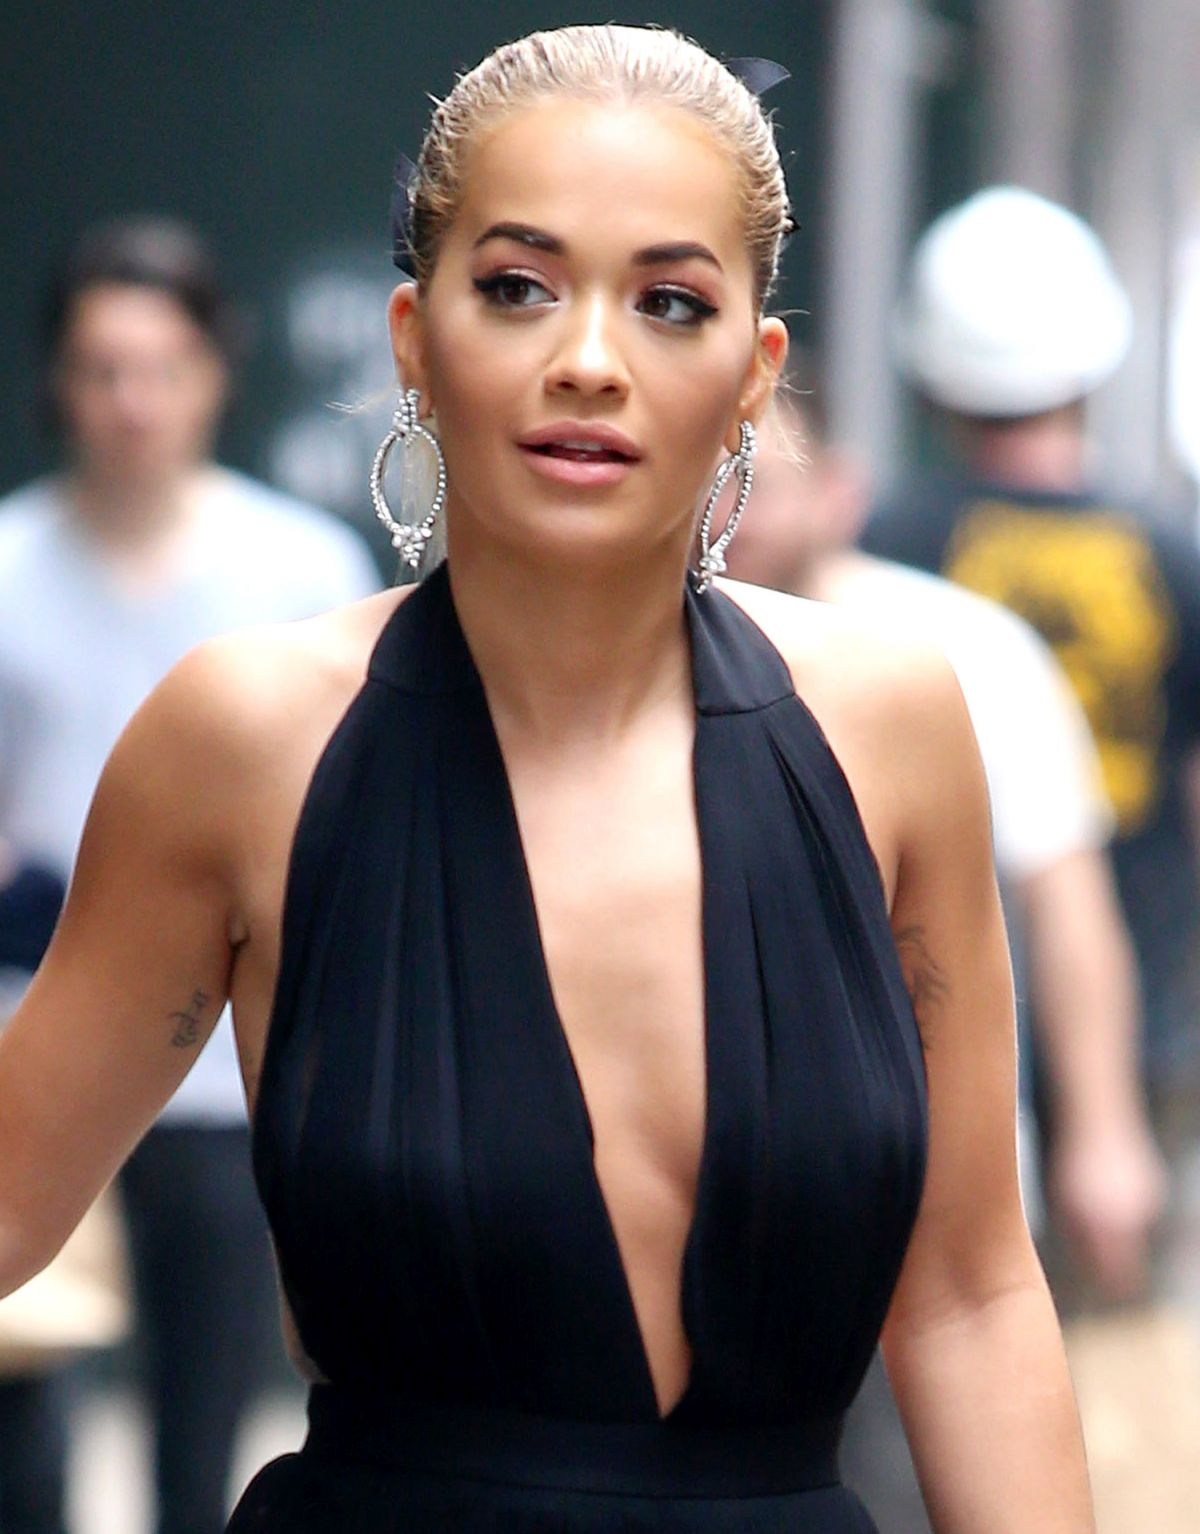 rita ora on the set of america s next top model in new